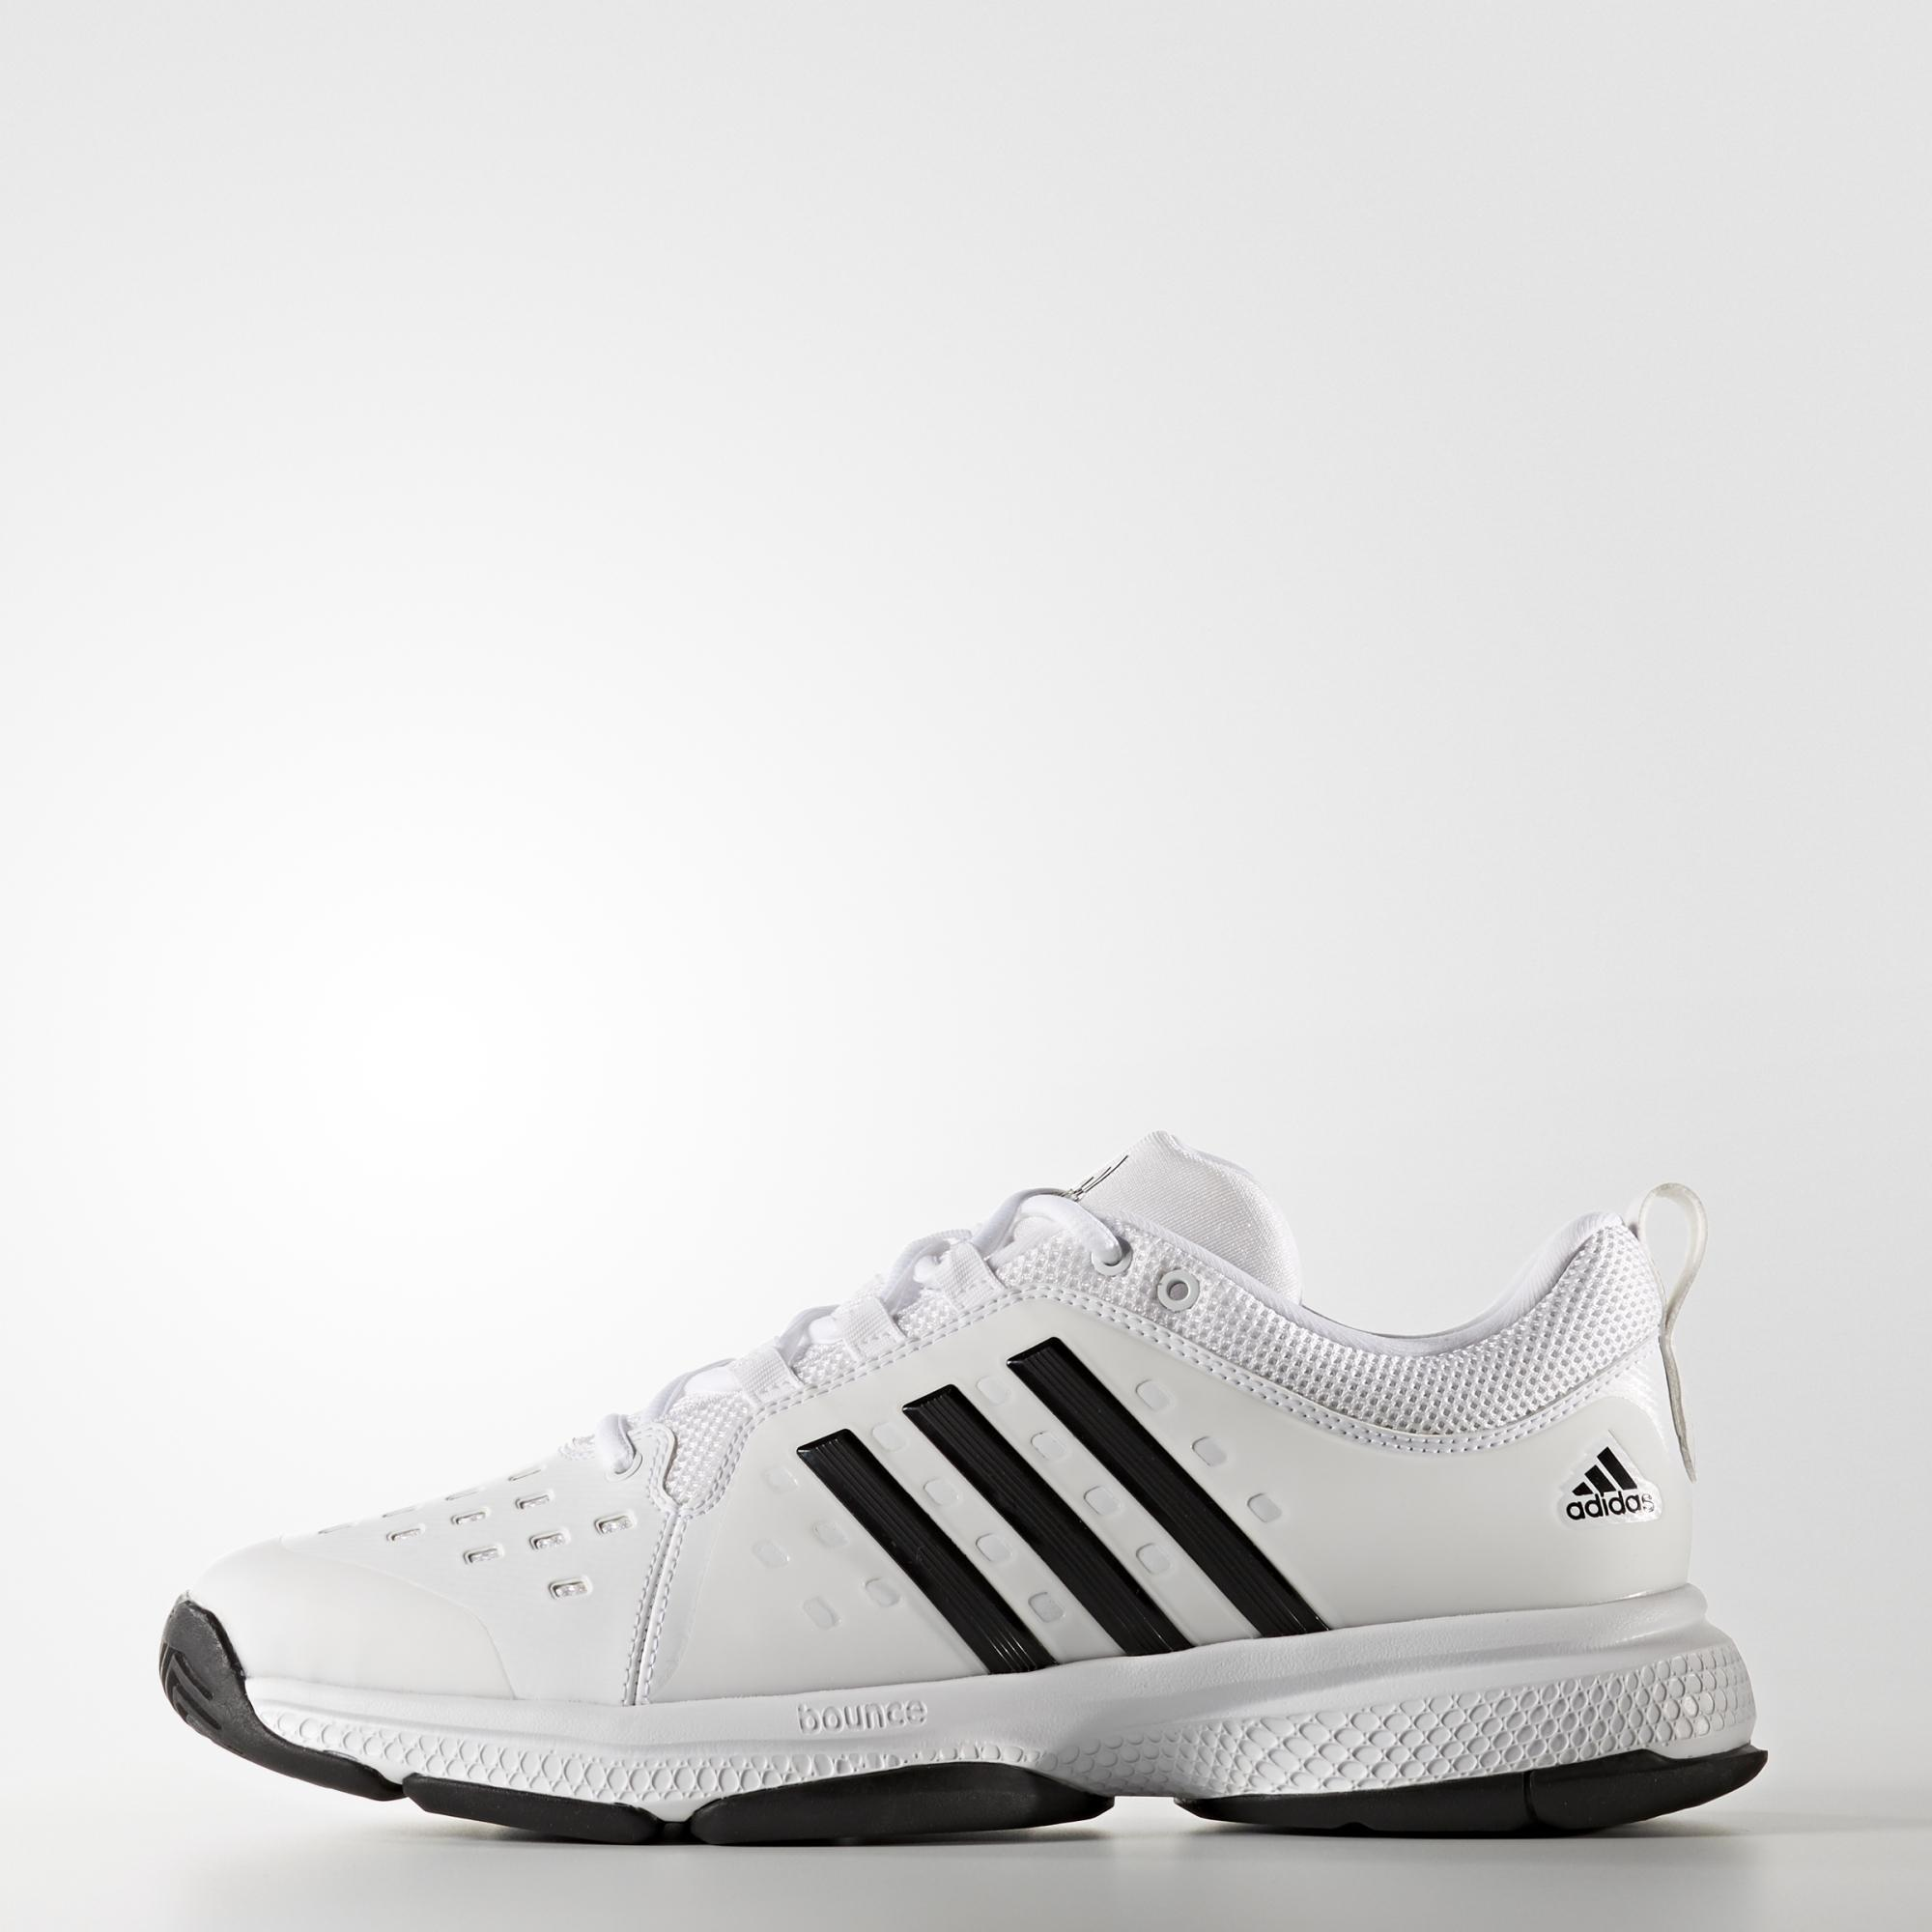 c2bd943cd Adidas Mens Barricade Classic Bounce Tennis Shoes - White Black ...